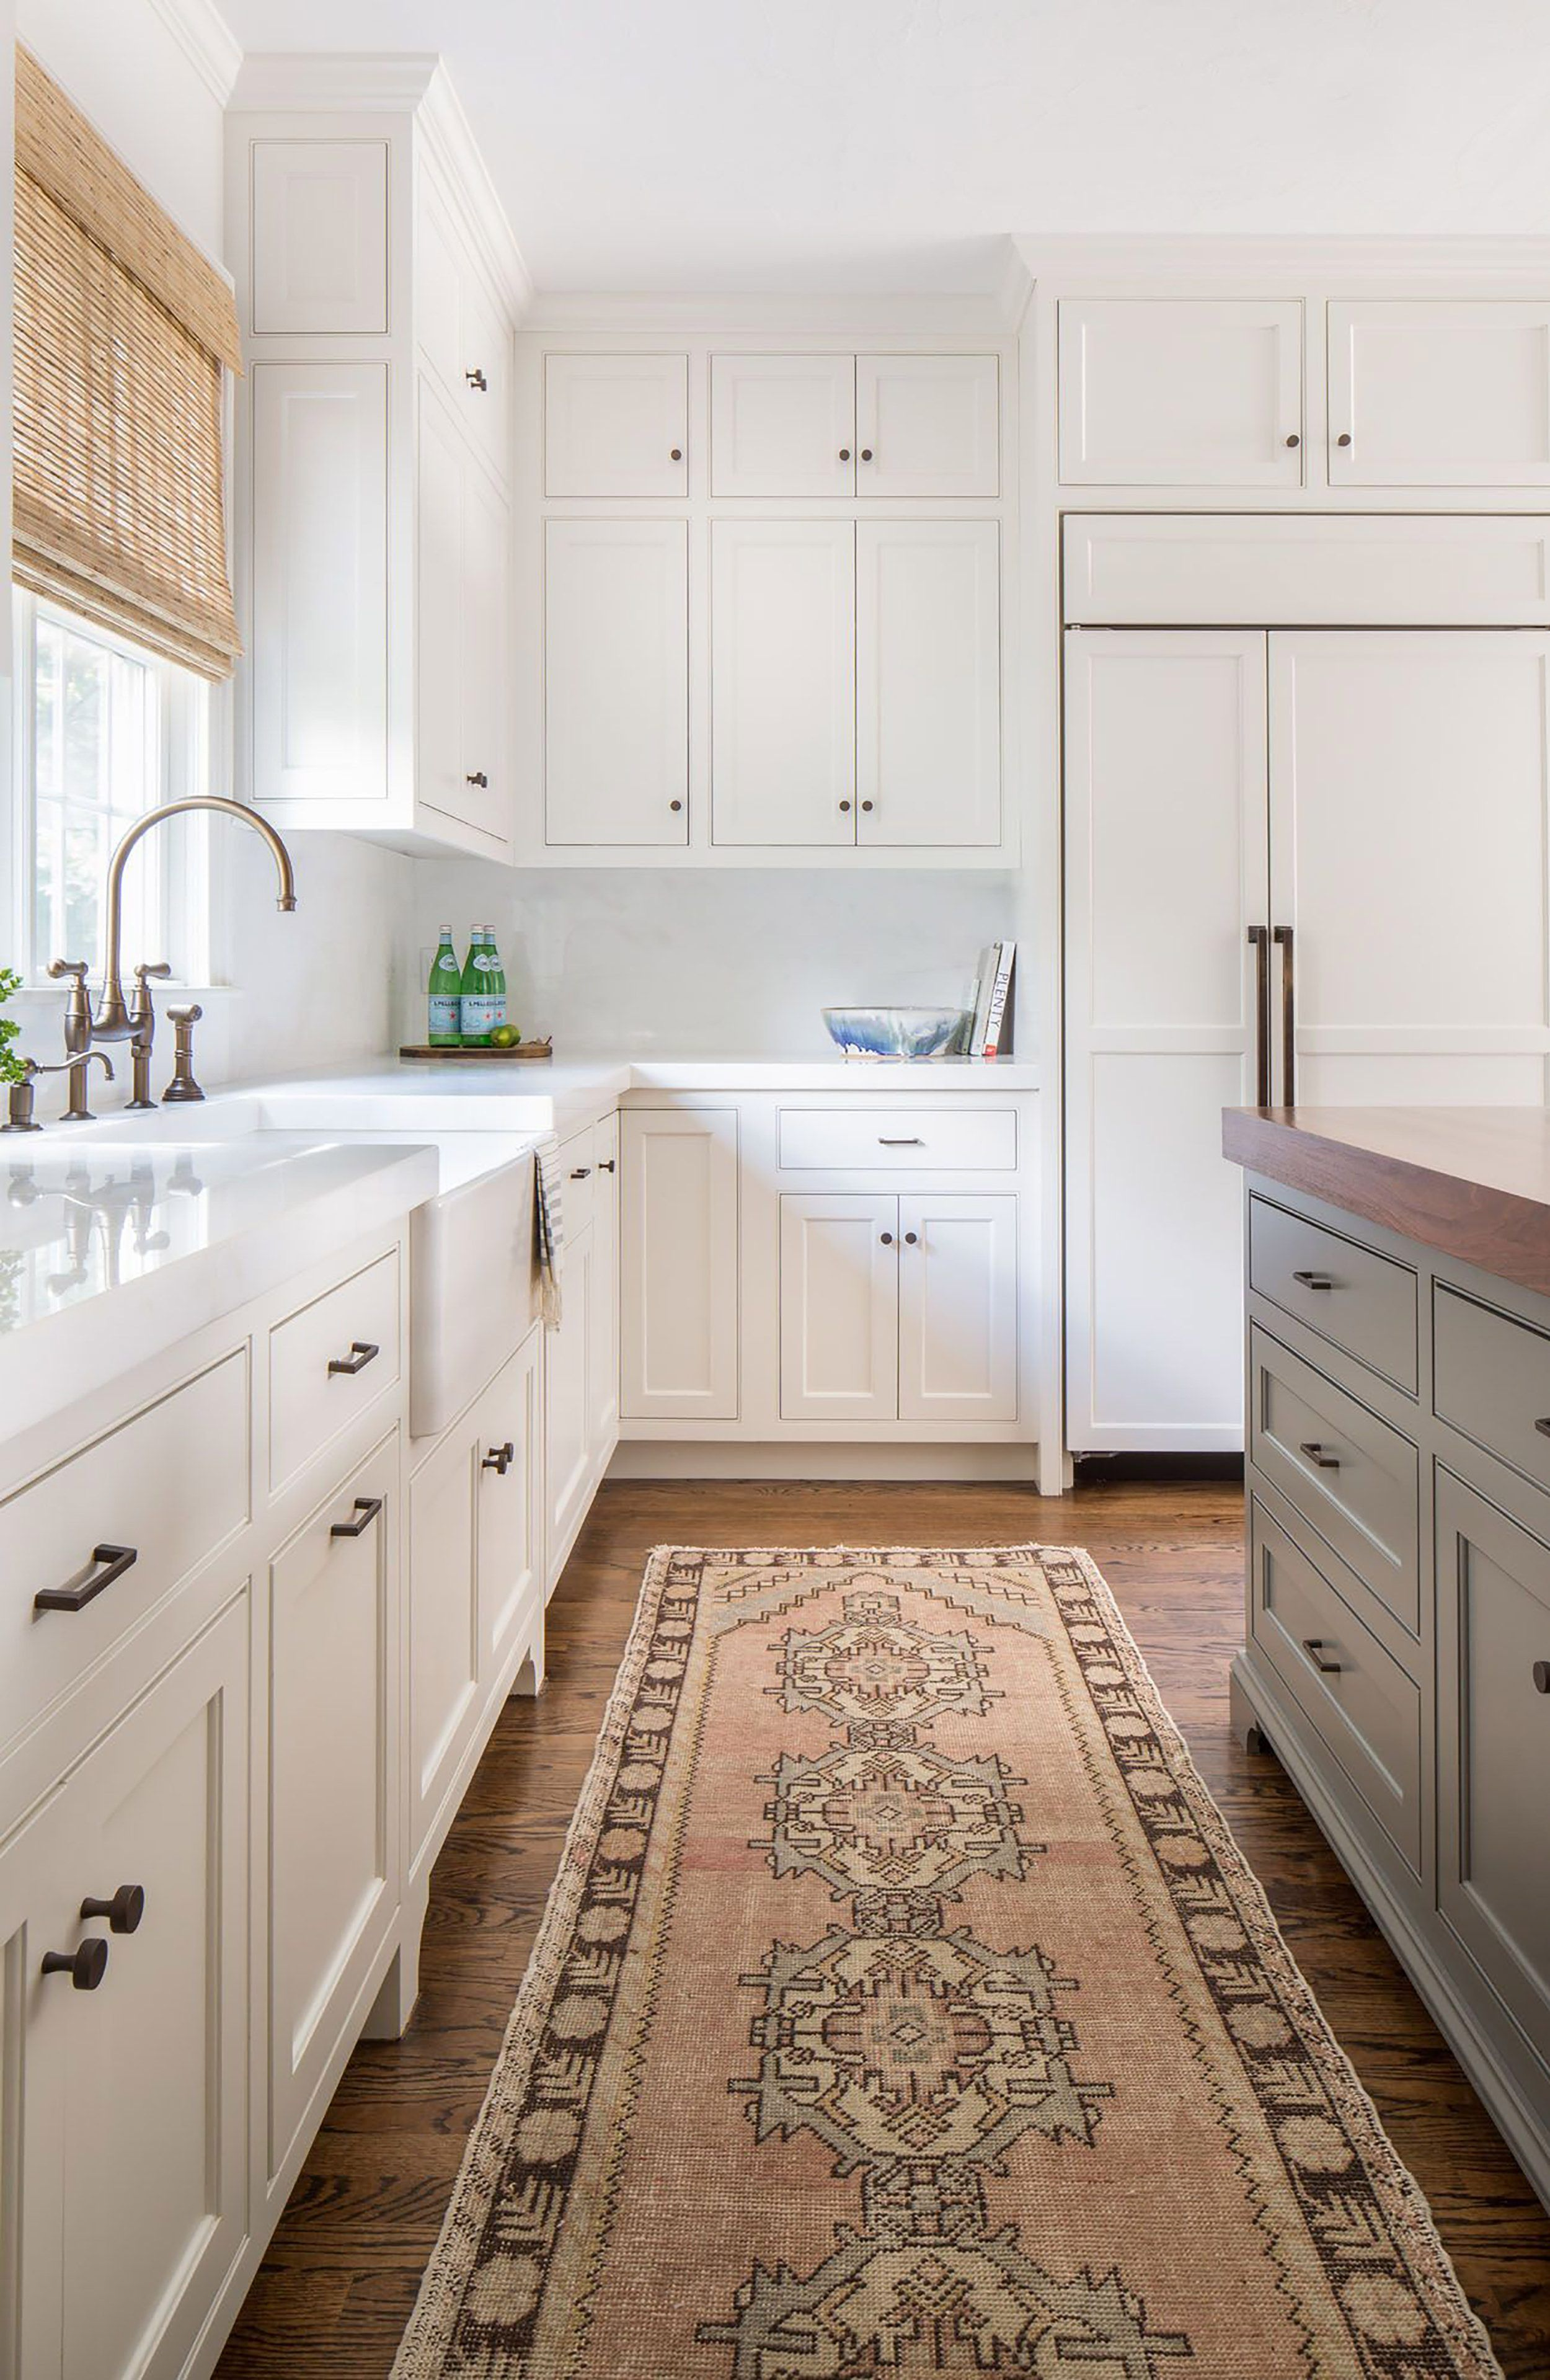 Kitchens With No Upper Cabinets - Insanely Gorgeous or Just Plain Insane